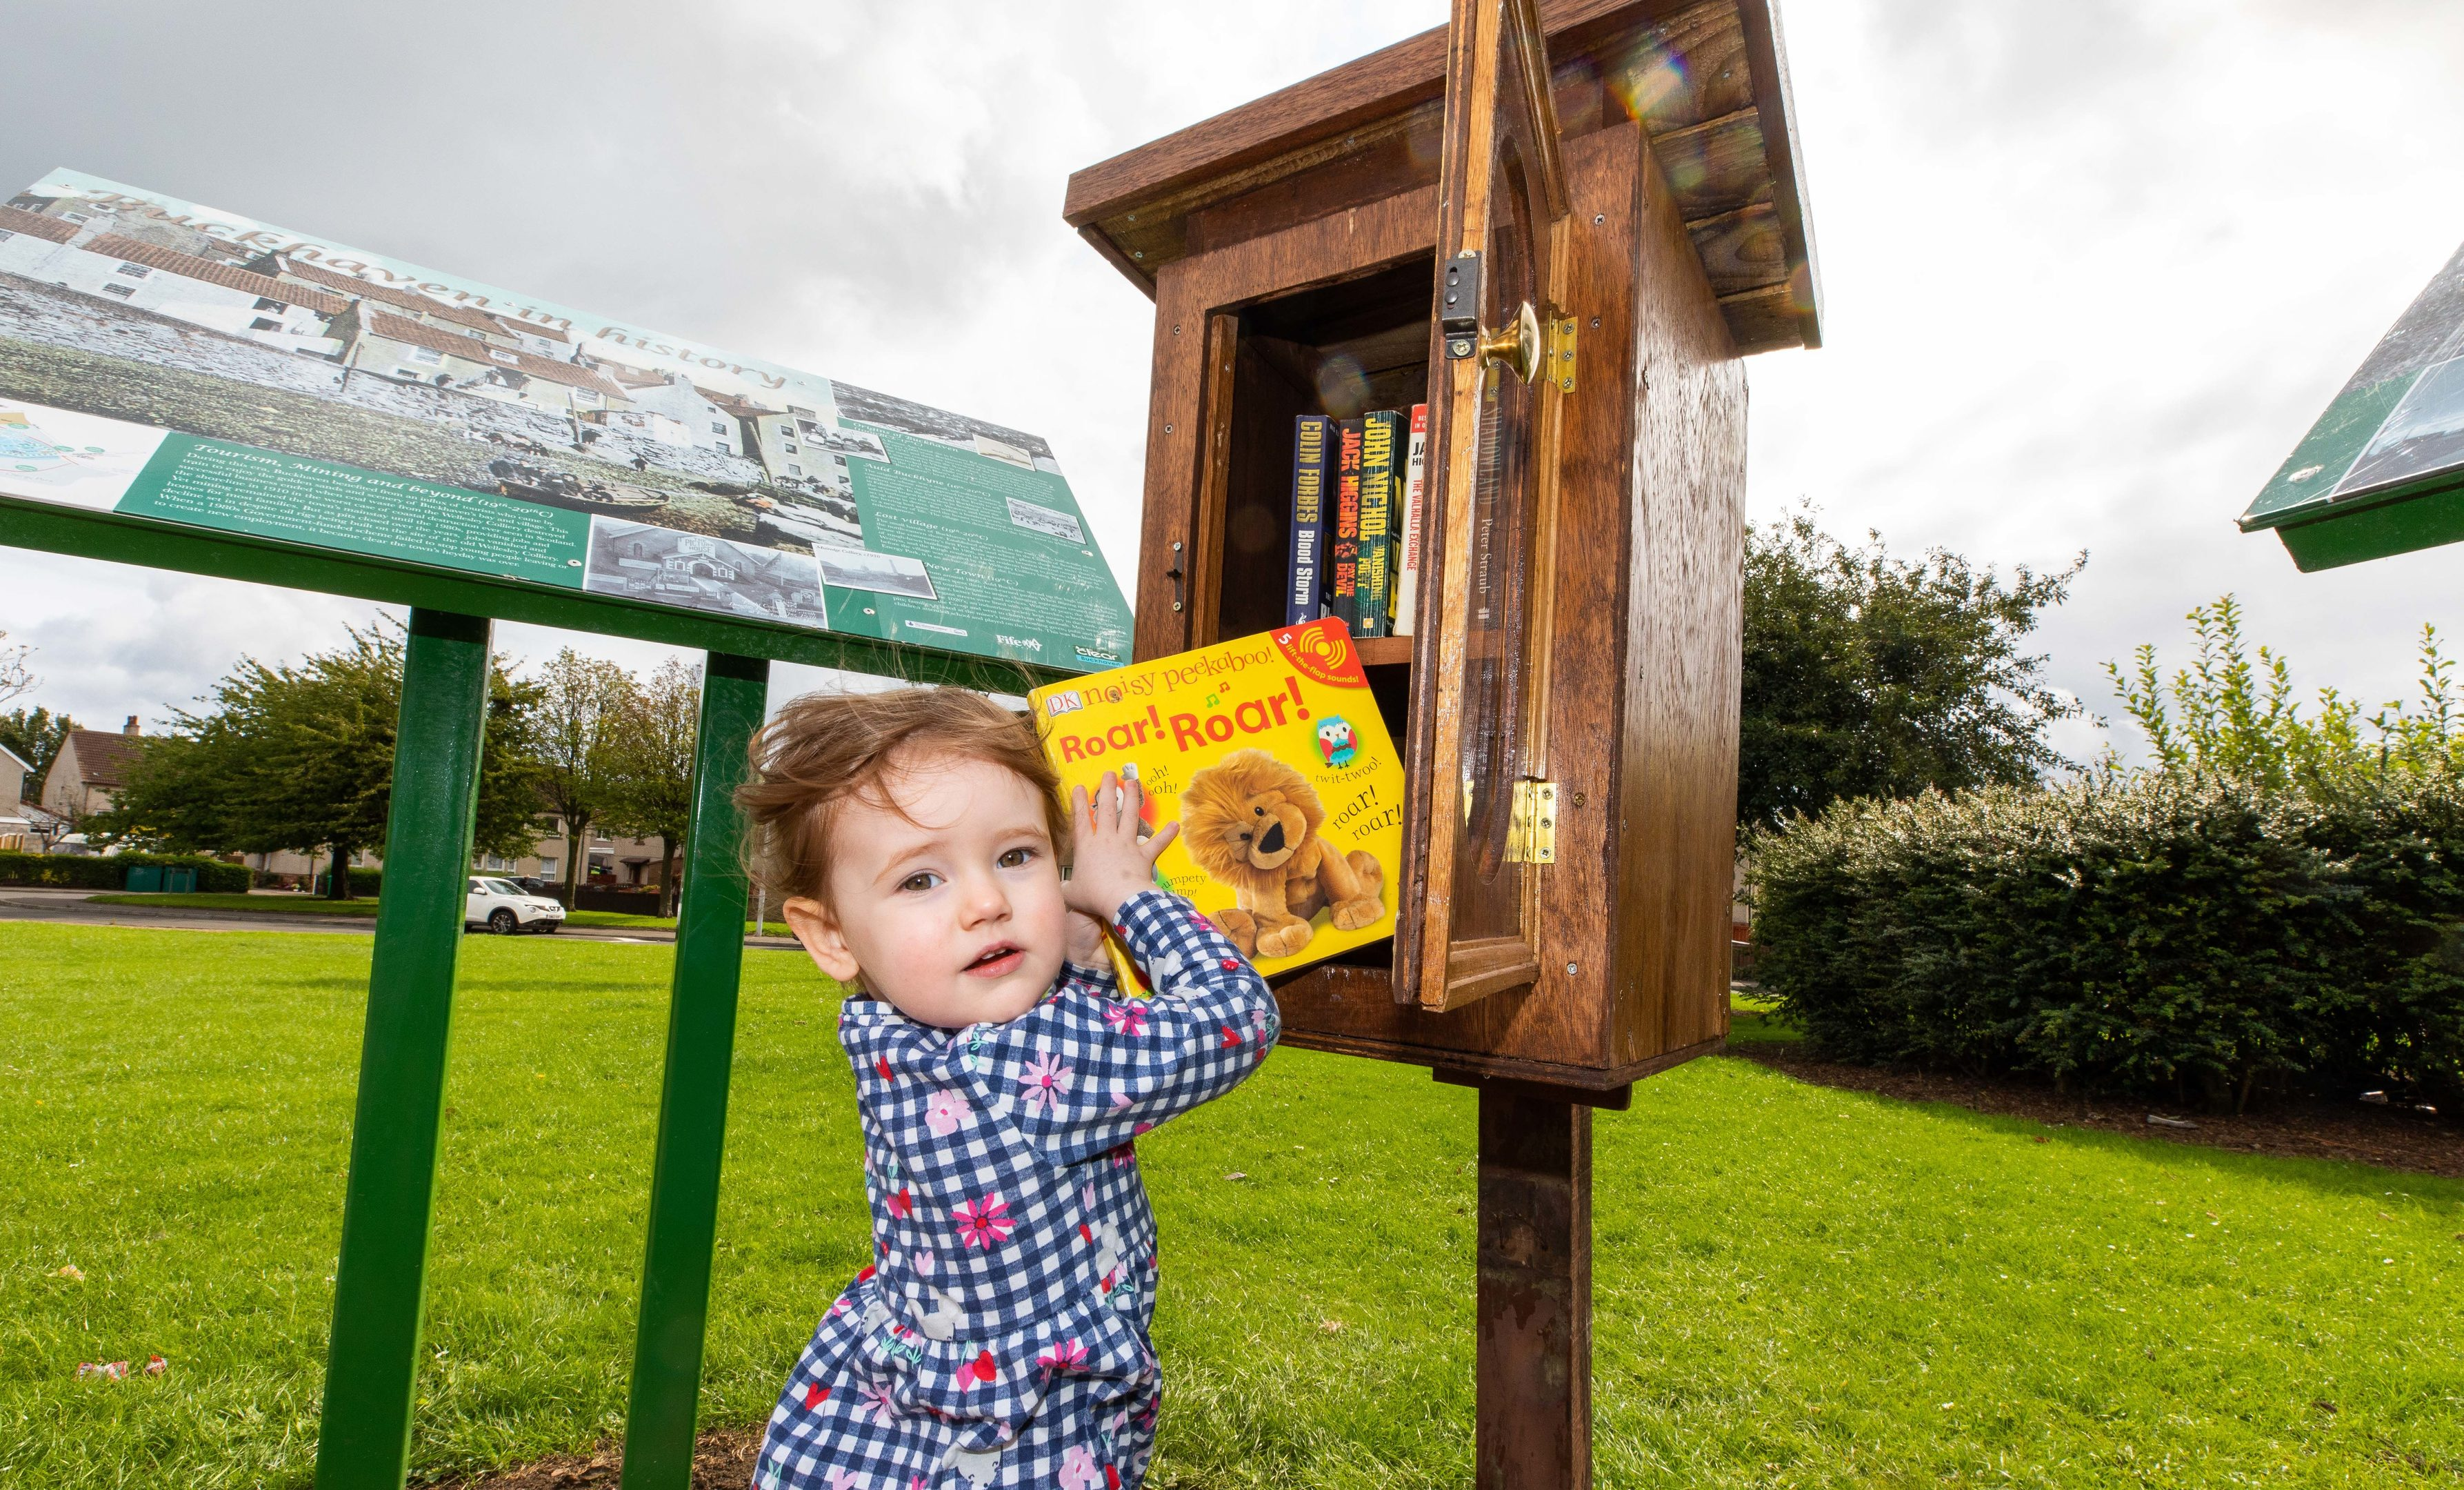 Two-year-old Carsyn Smart checks out a book from The Wee Library